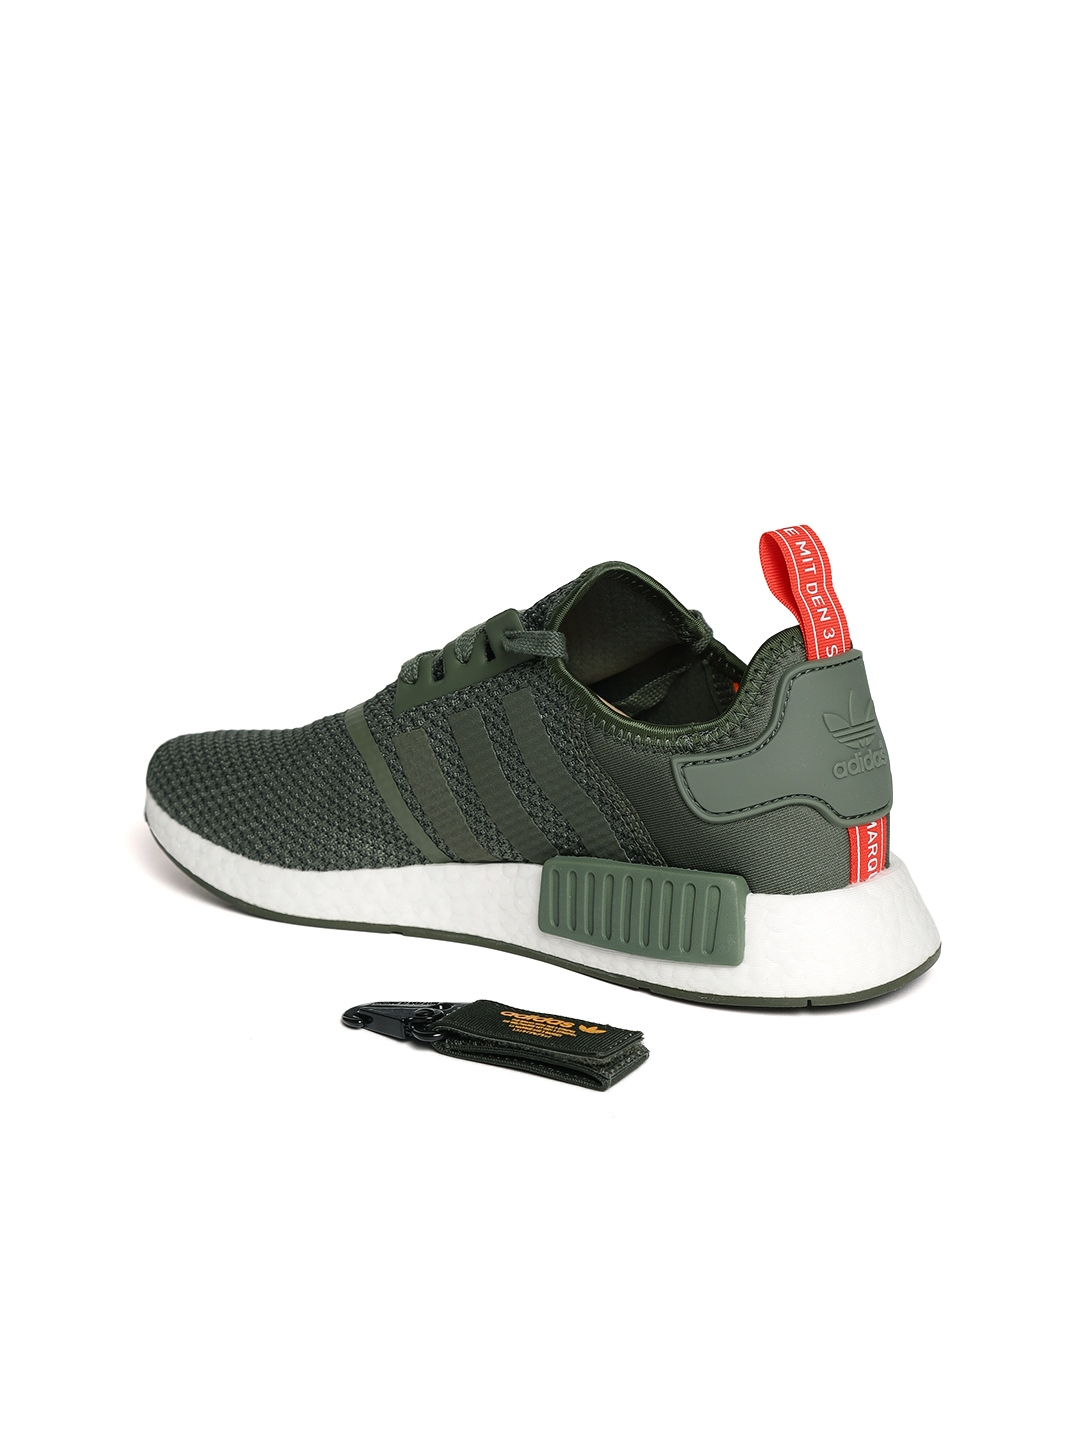 e5cff8c5a Buy ADIDAS Originals Men Olive Green NMD R1 Casual Shoes - Casual ...